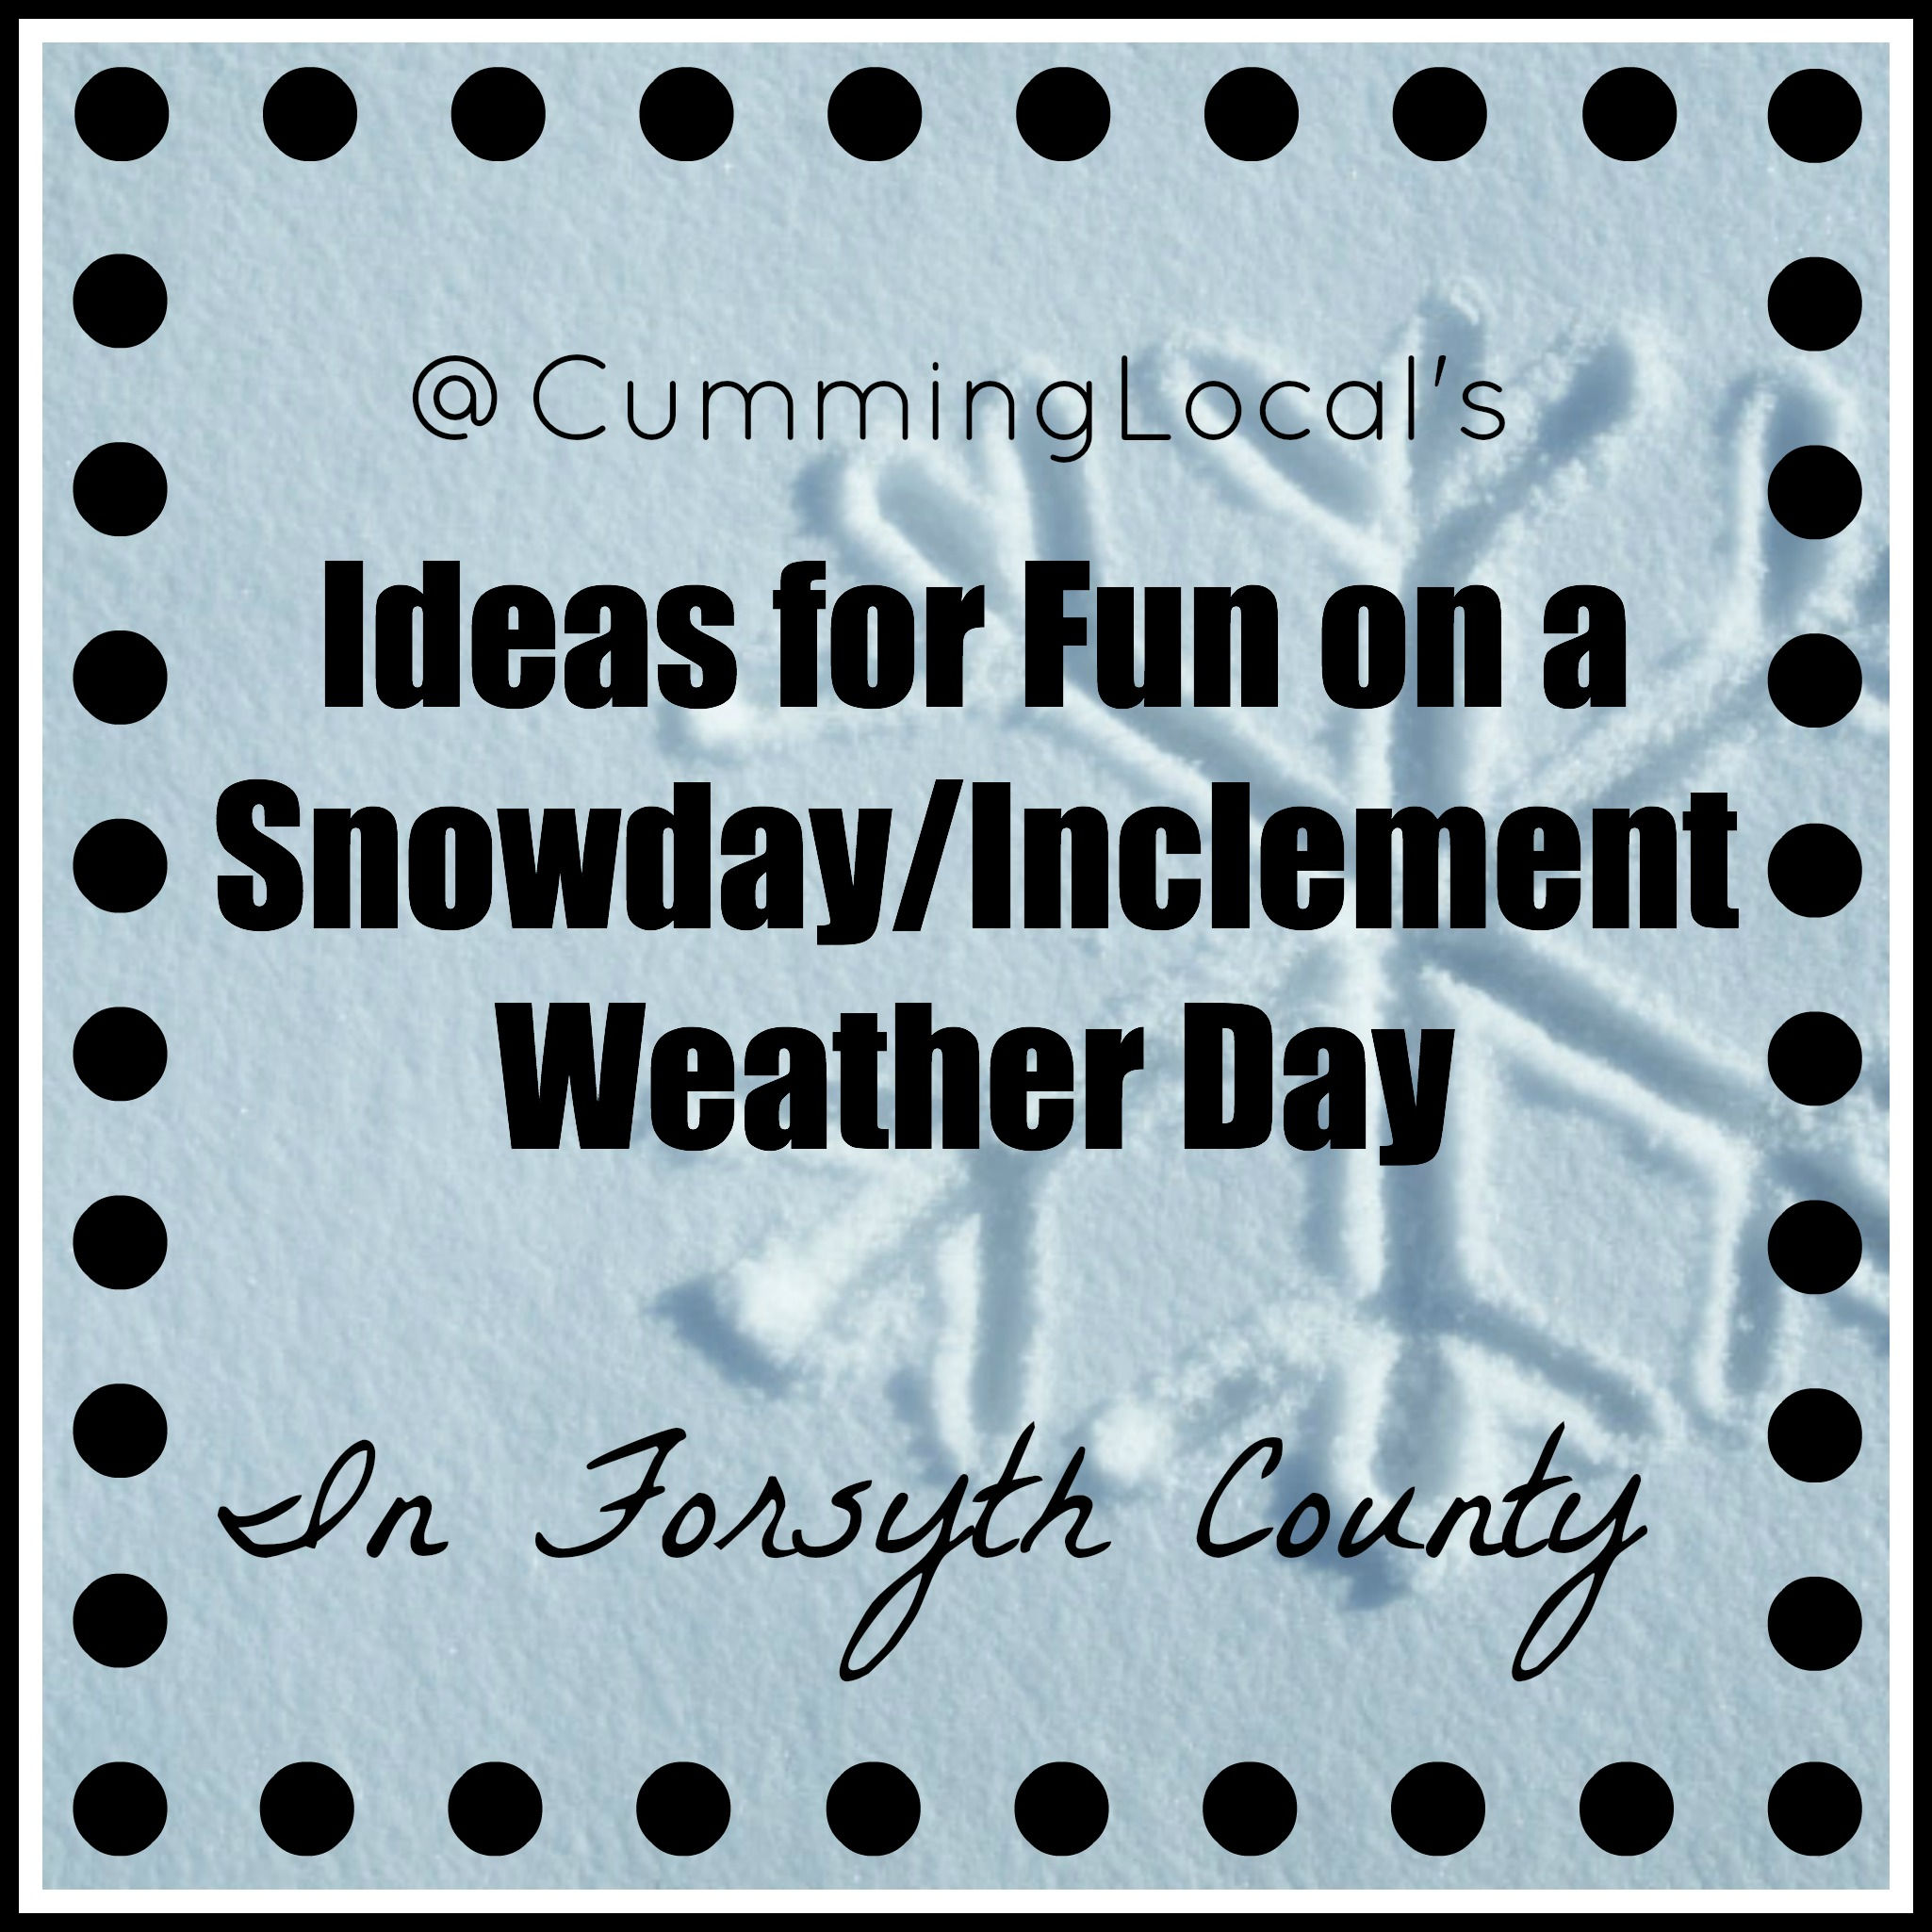 Ideas for Fun on a Snowday Or Inclement Weather Day in Forsyth County